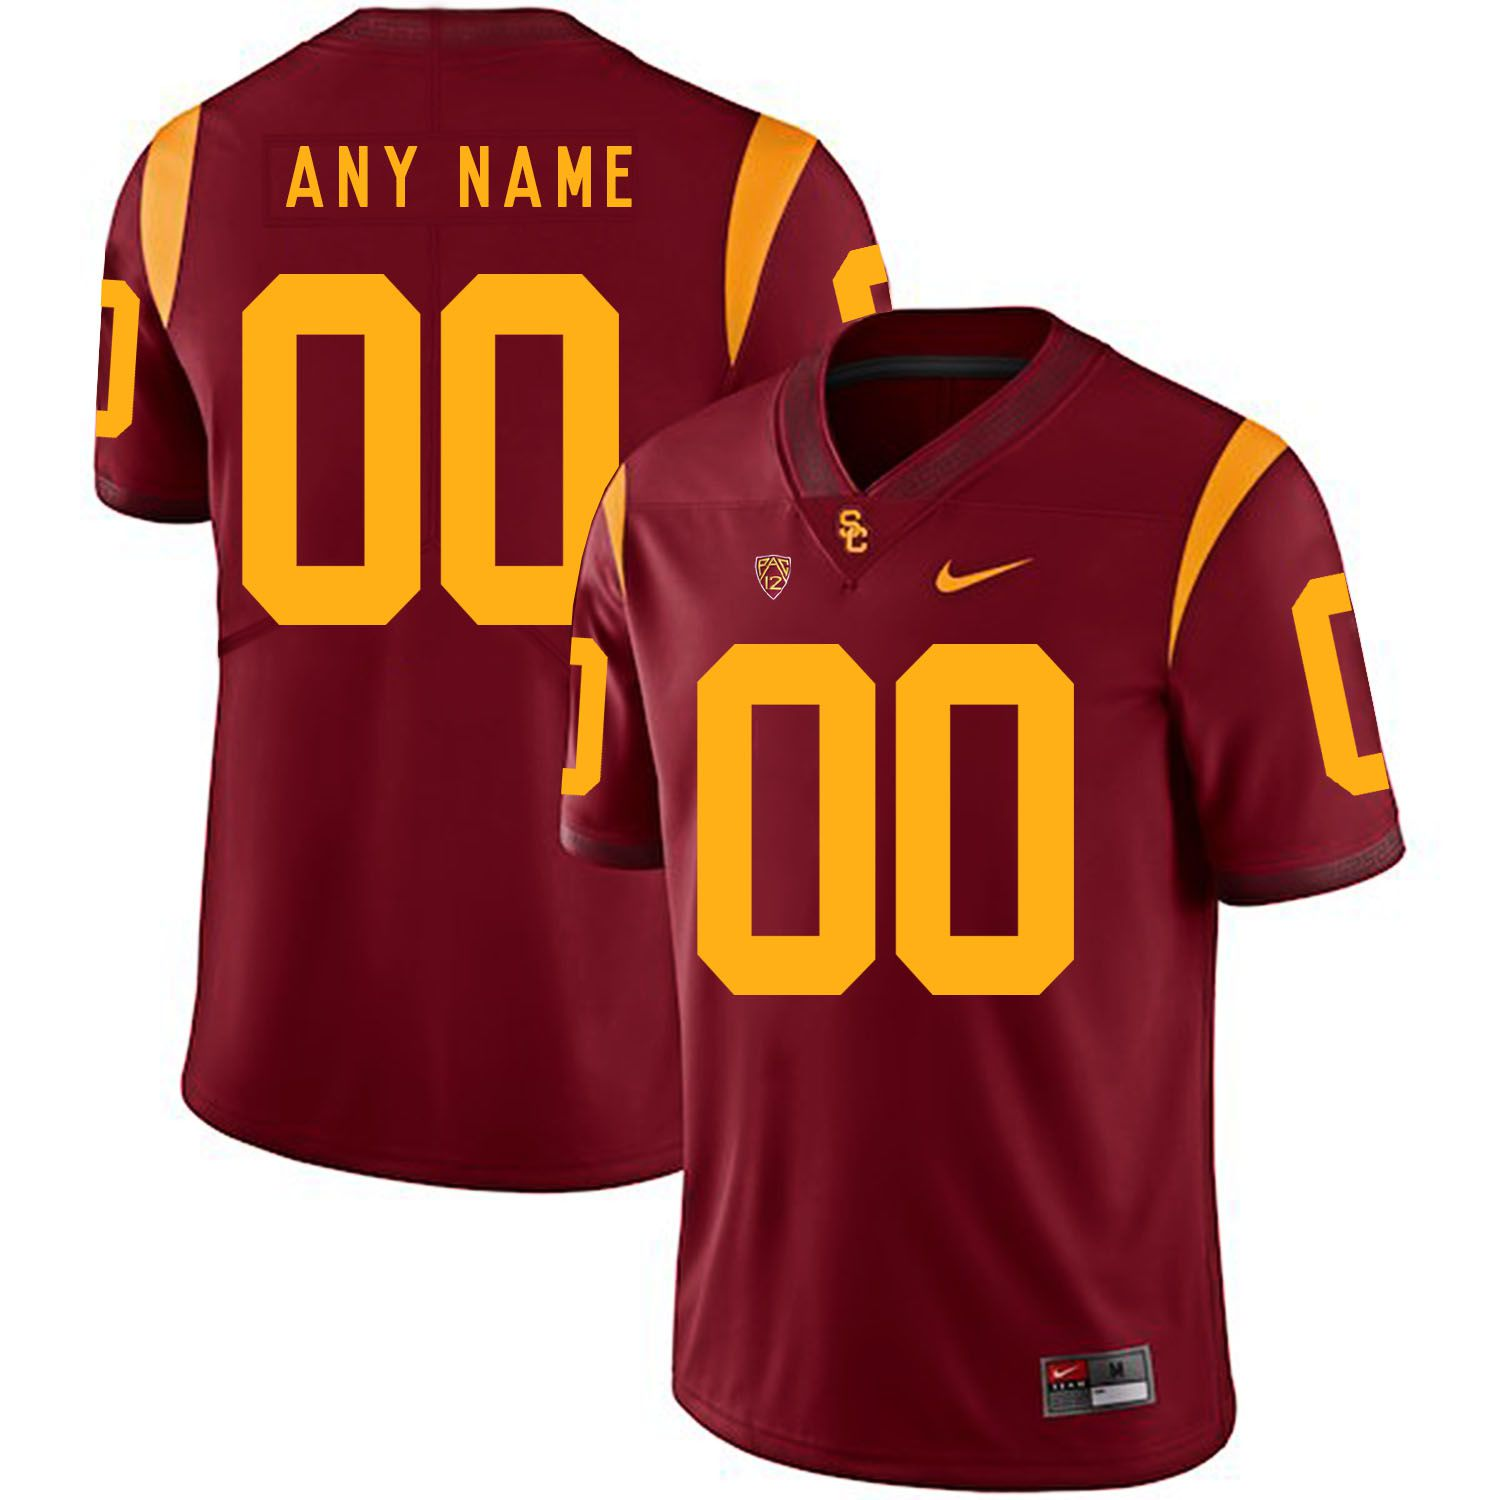 Men USC Trojans 00 Any Name Red Customized NCAA Jerseys